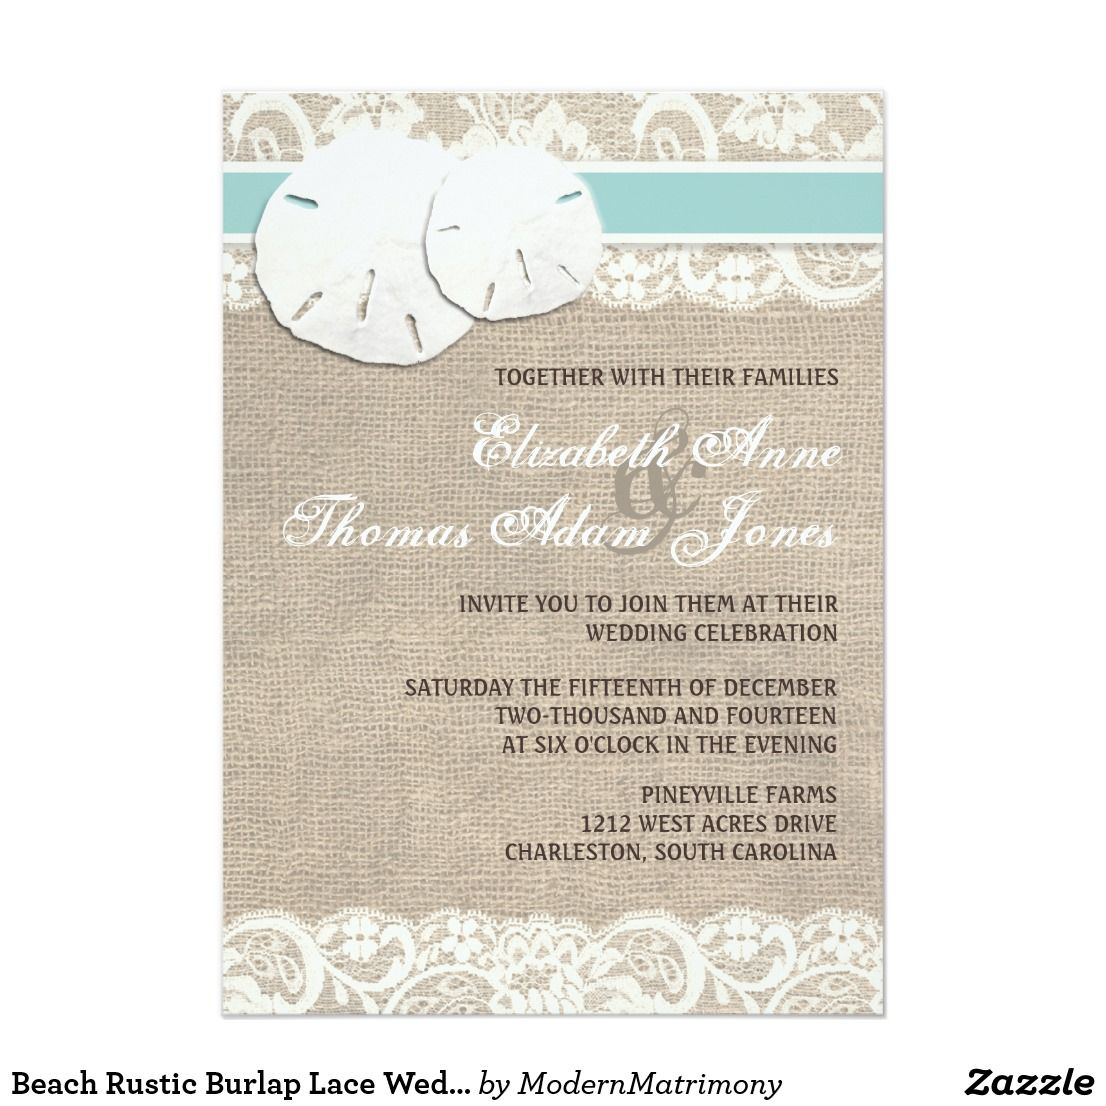 Beach Rustic Burlap Lace Wedding Invitation This elegant beach ...